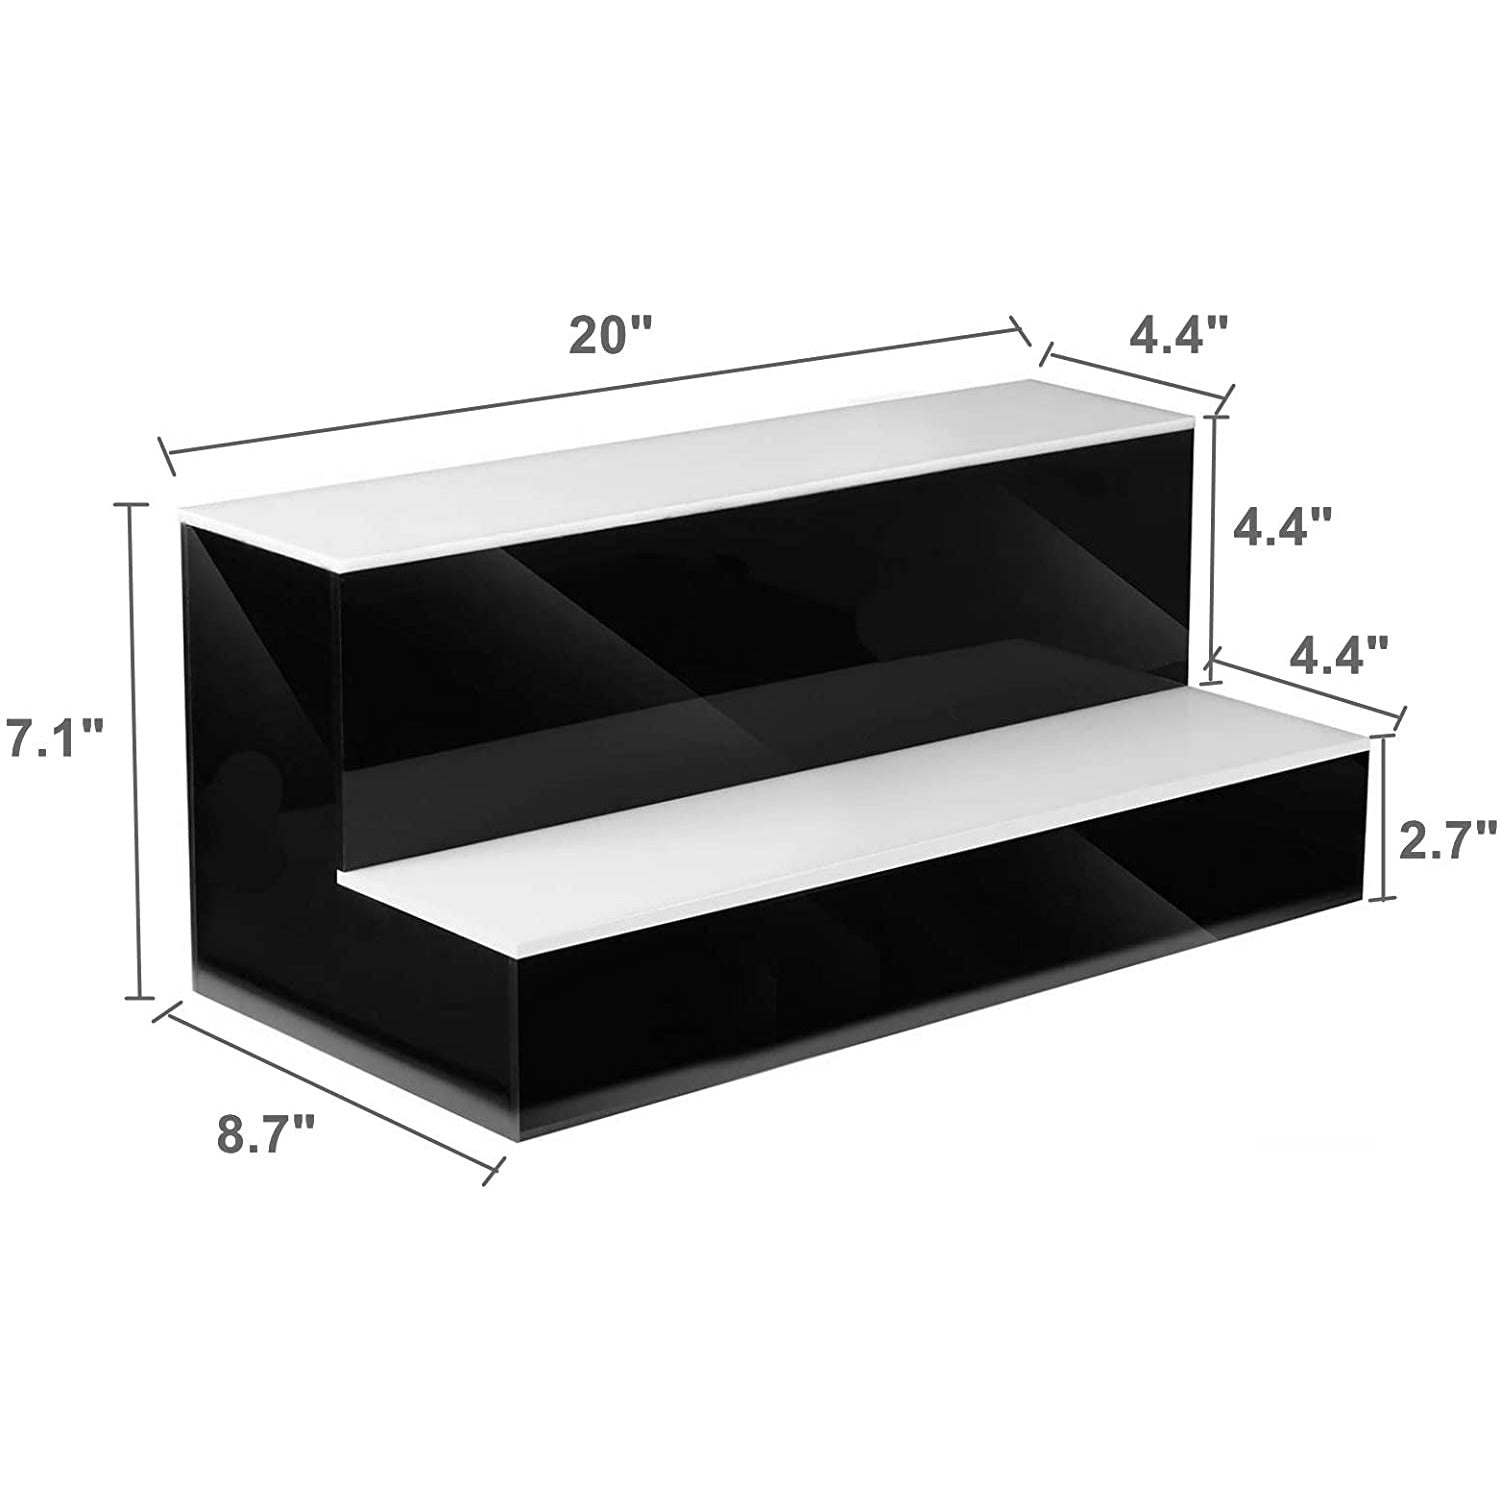 Black LED Dynamic Liquor Shelf 16 inch /20 inch  Remote Control